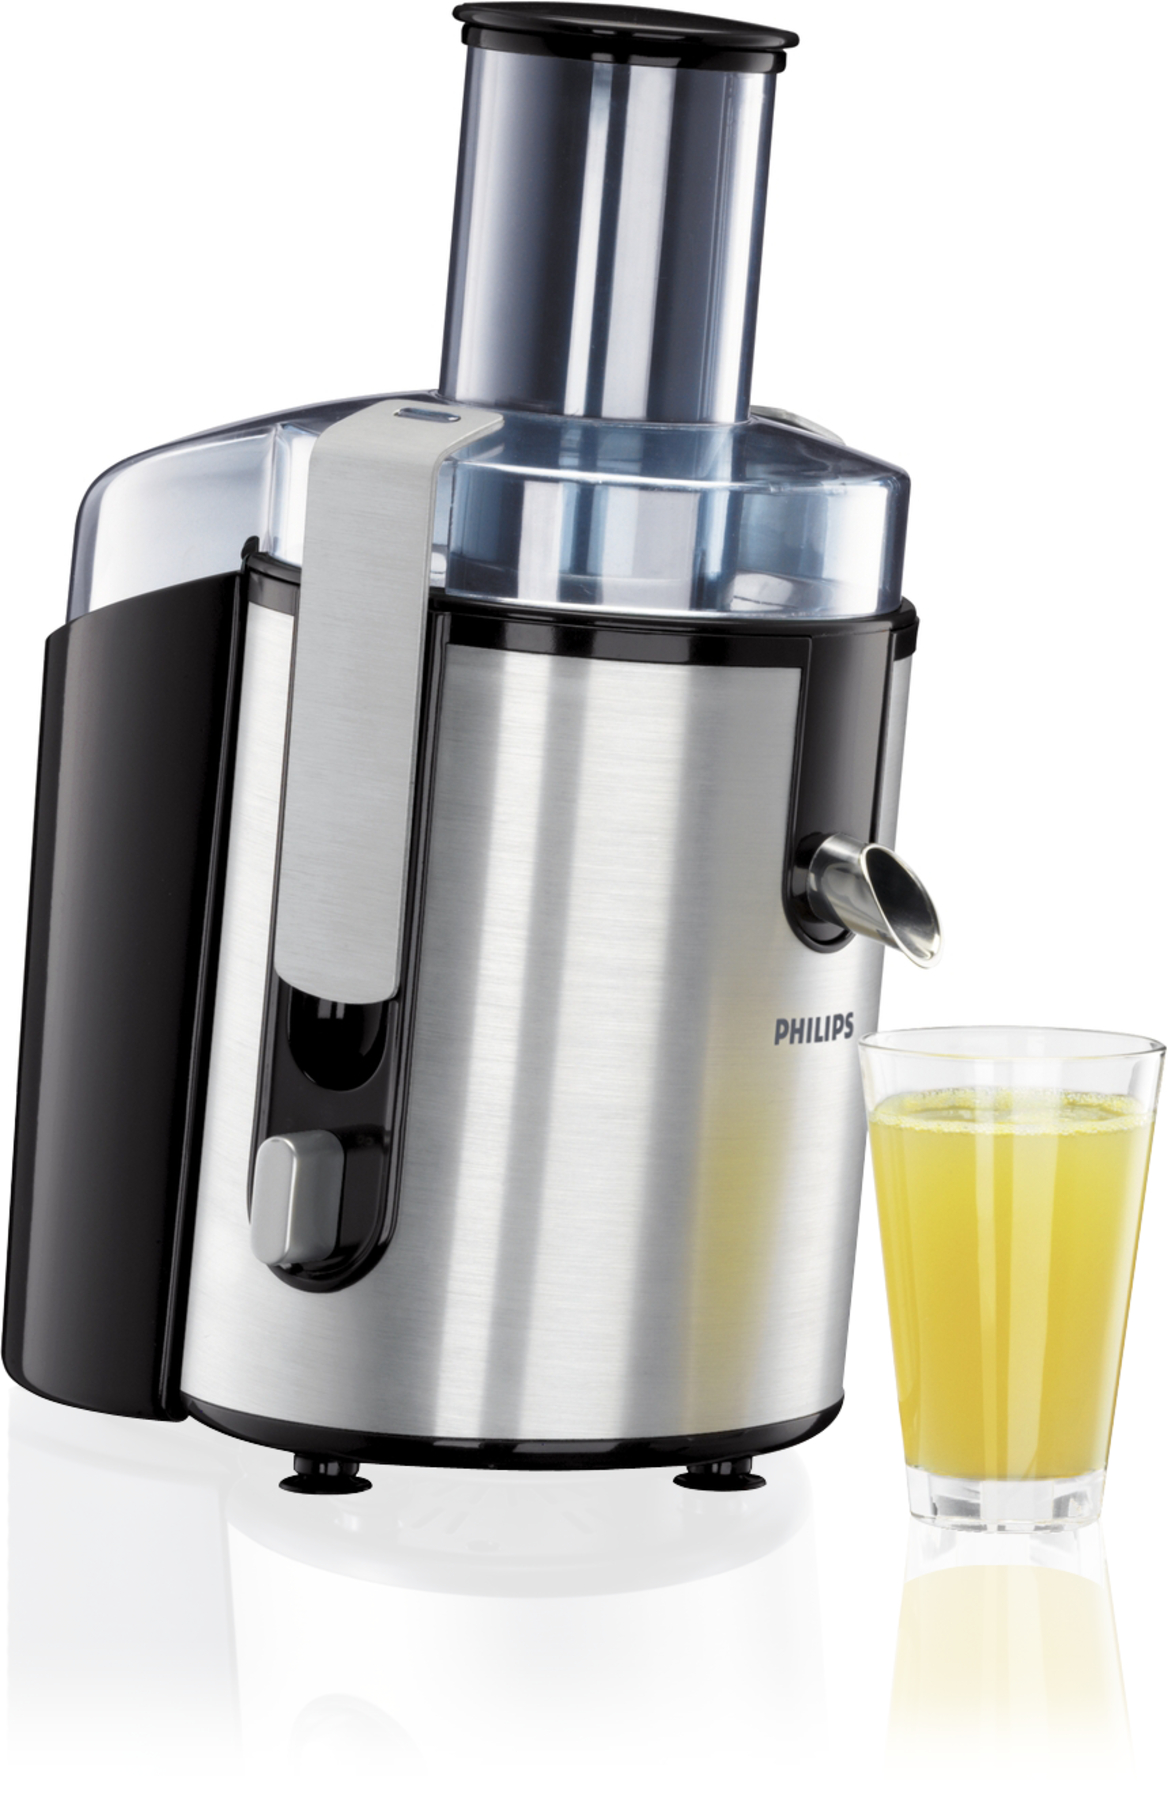 PHILIPS HR1861/00 ALUMINIUM WHOLE FRUIT JUICER WITH JUG Enlarged Preview